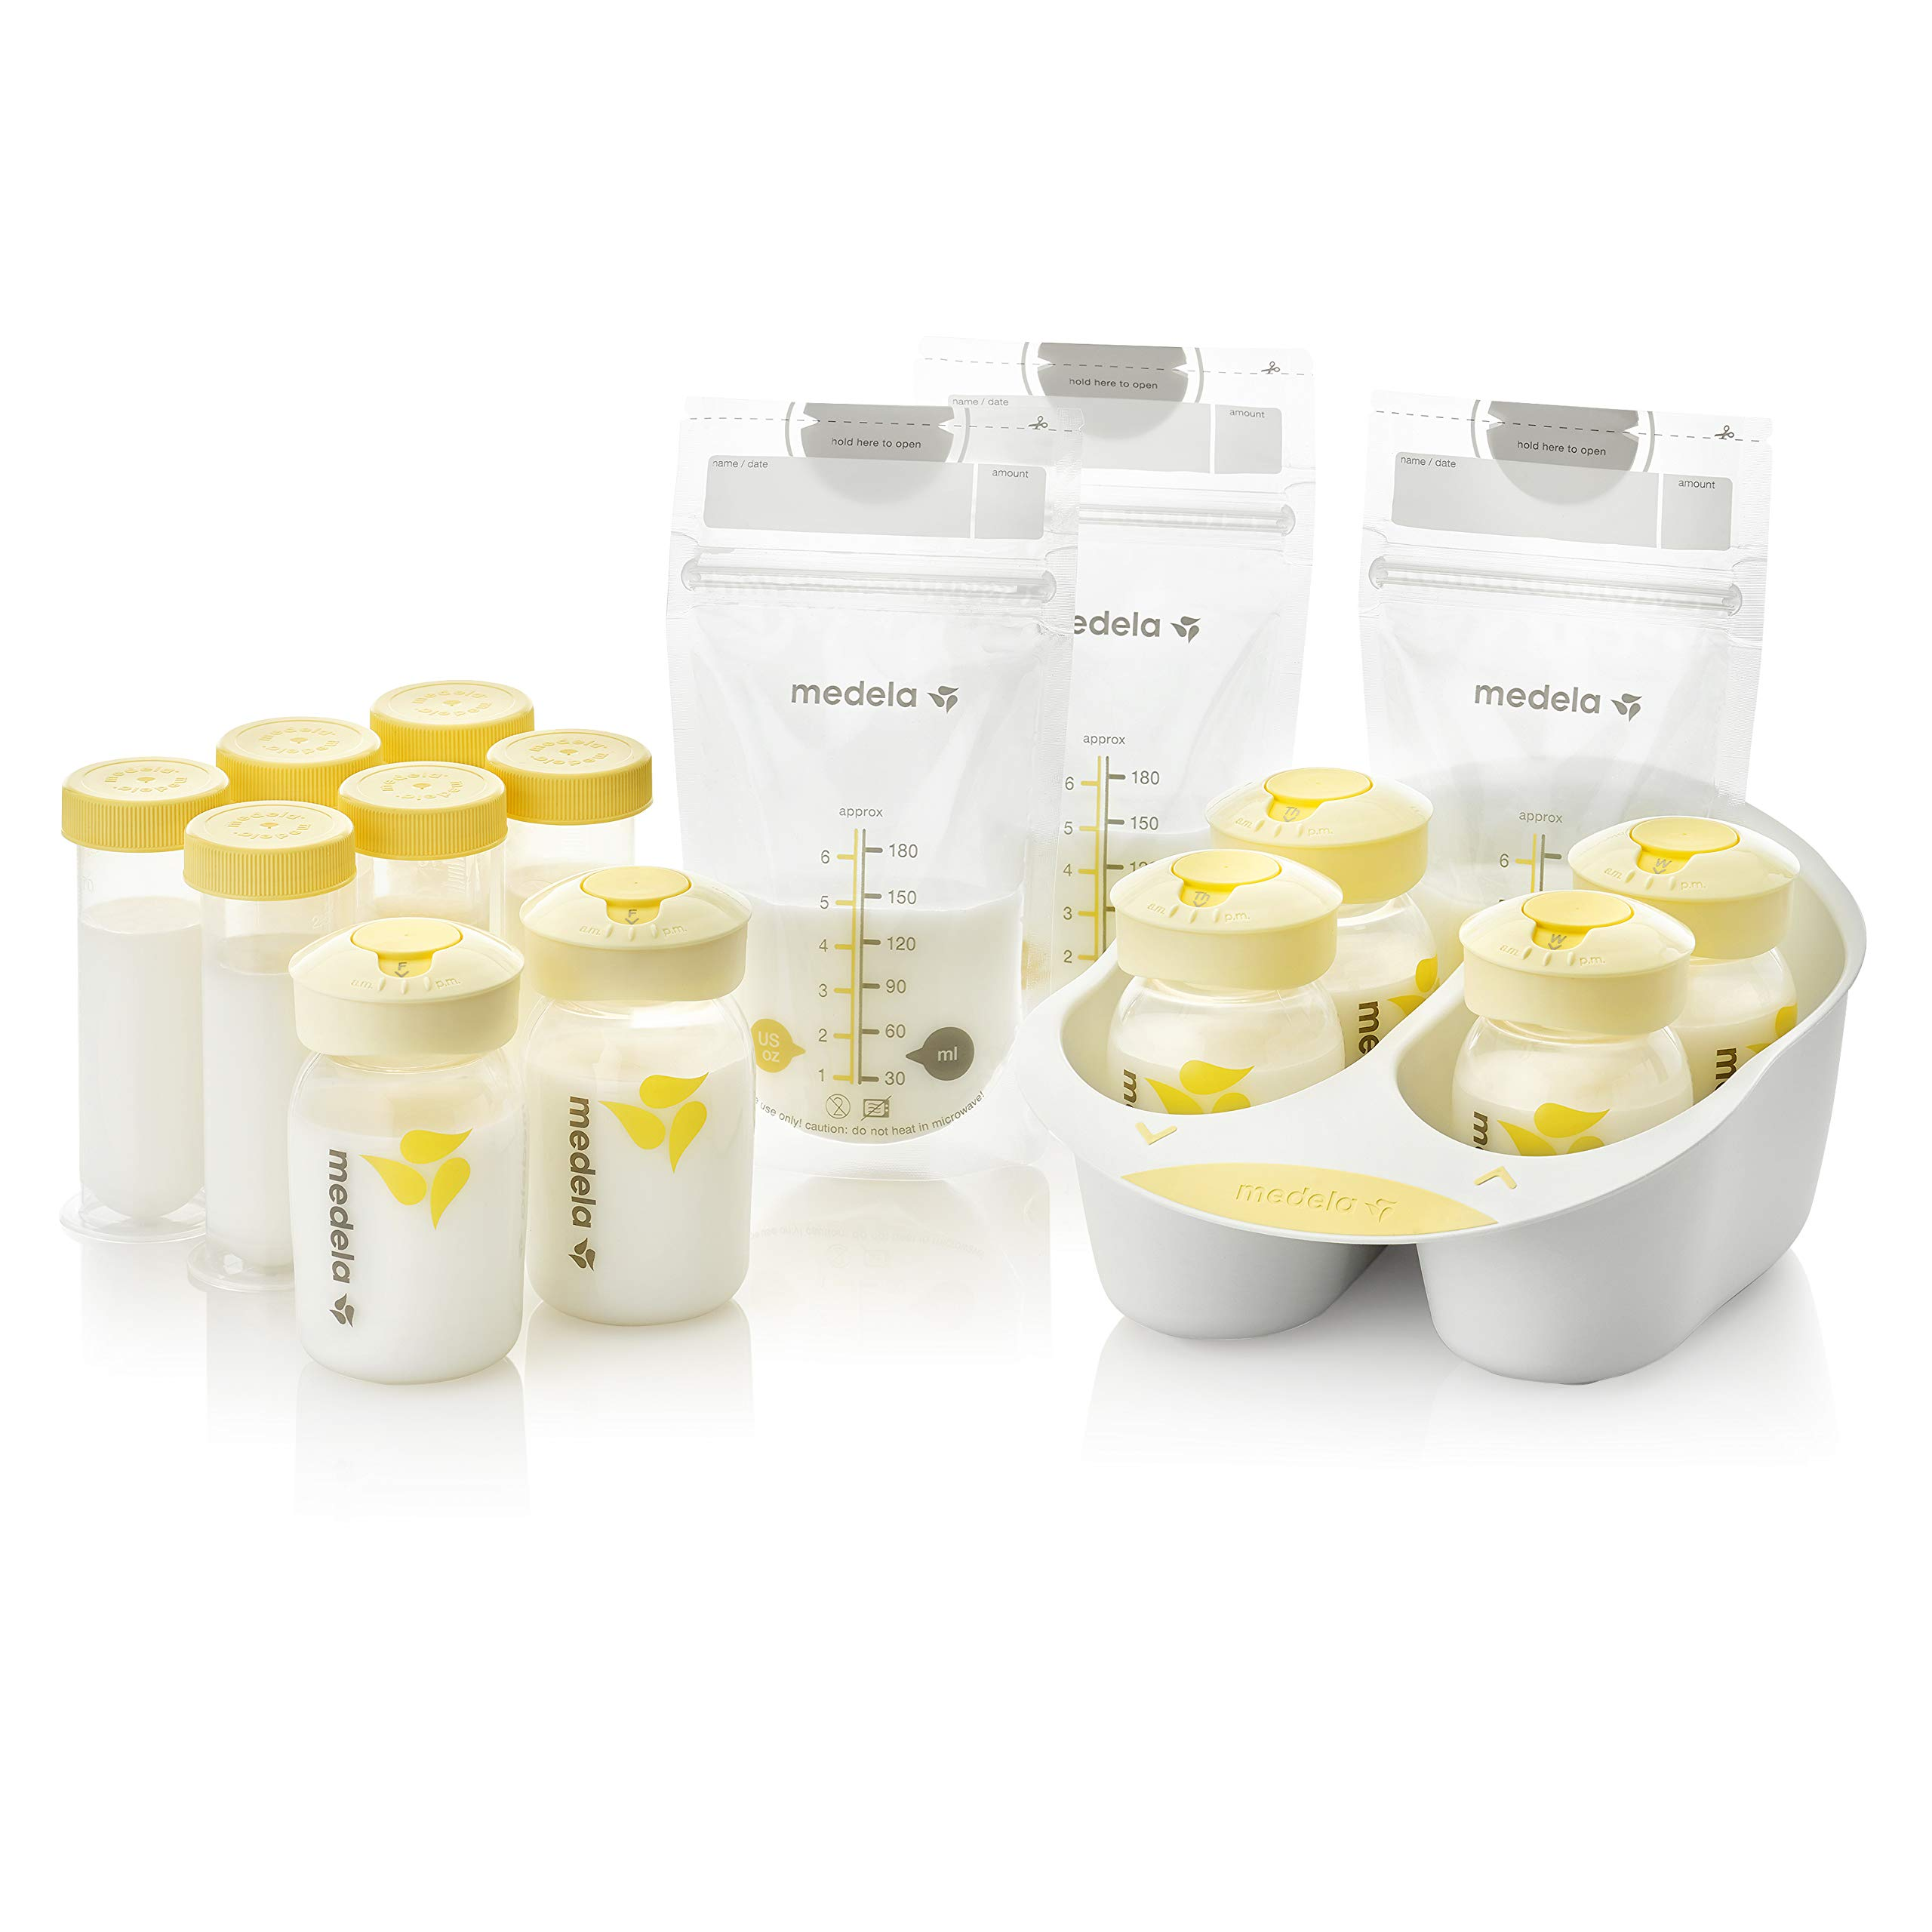 Medela Breast Milk Storage Solution Set, Breastfeeding Supplies & Containers, Breastmilk Organizer, Made Without BPA by Medela